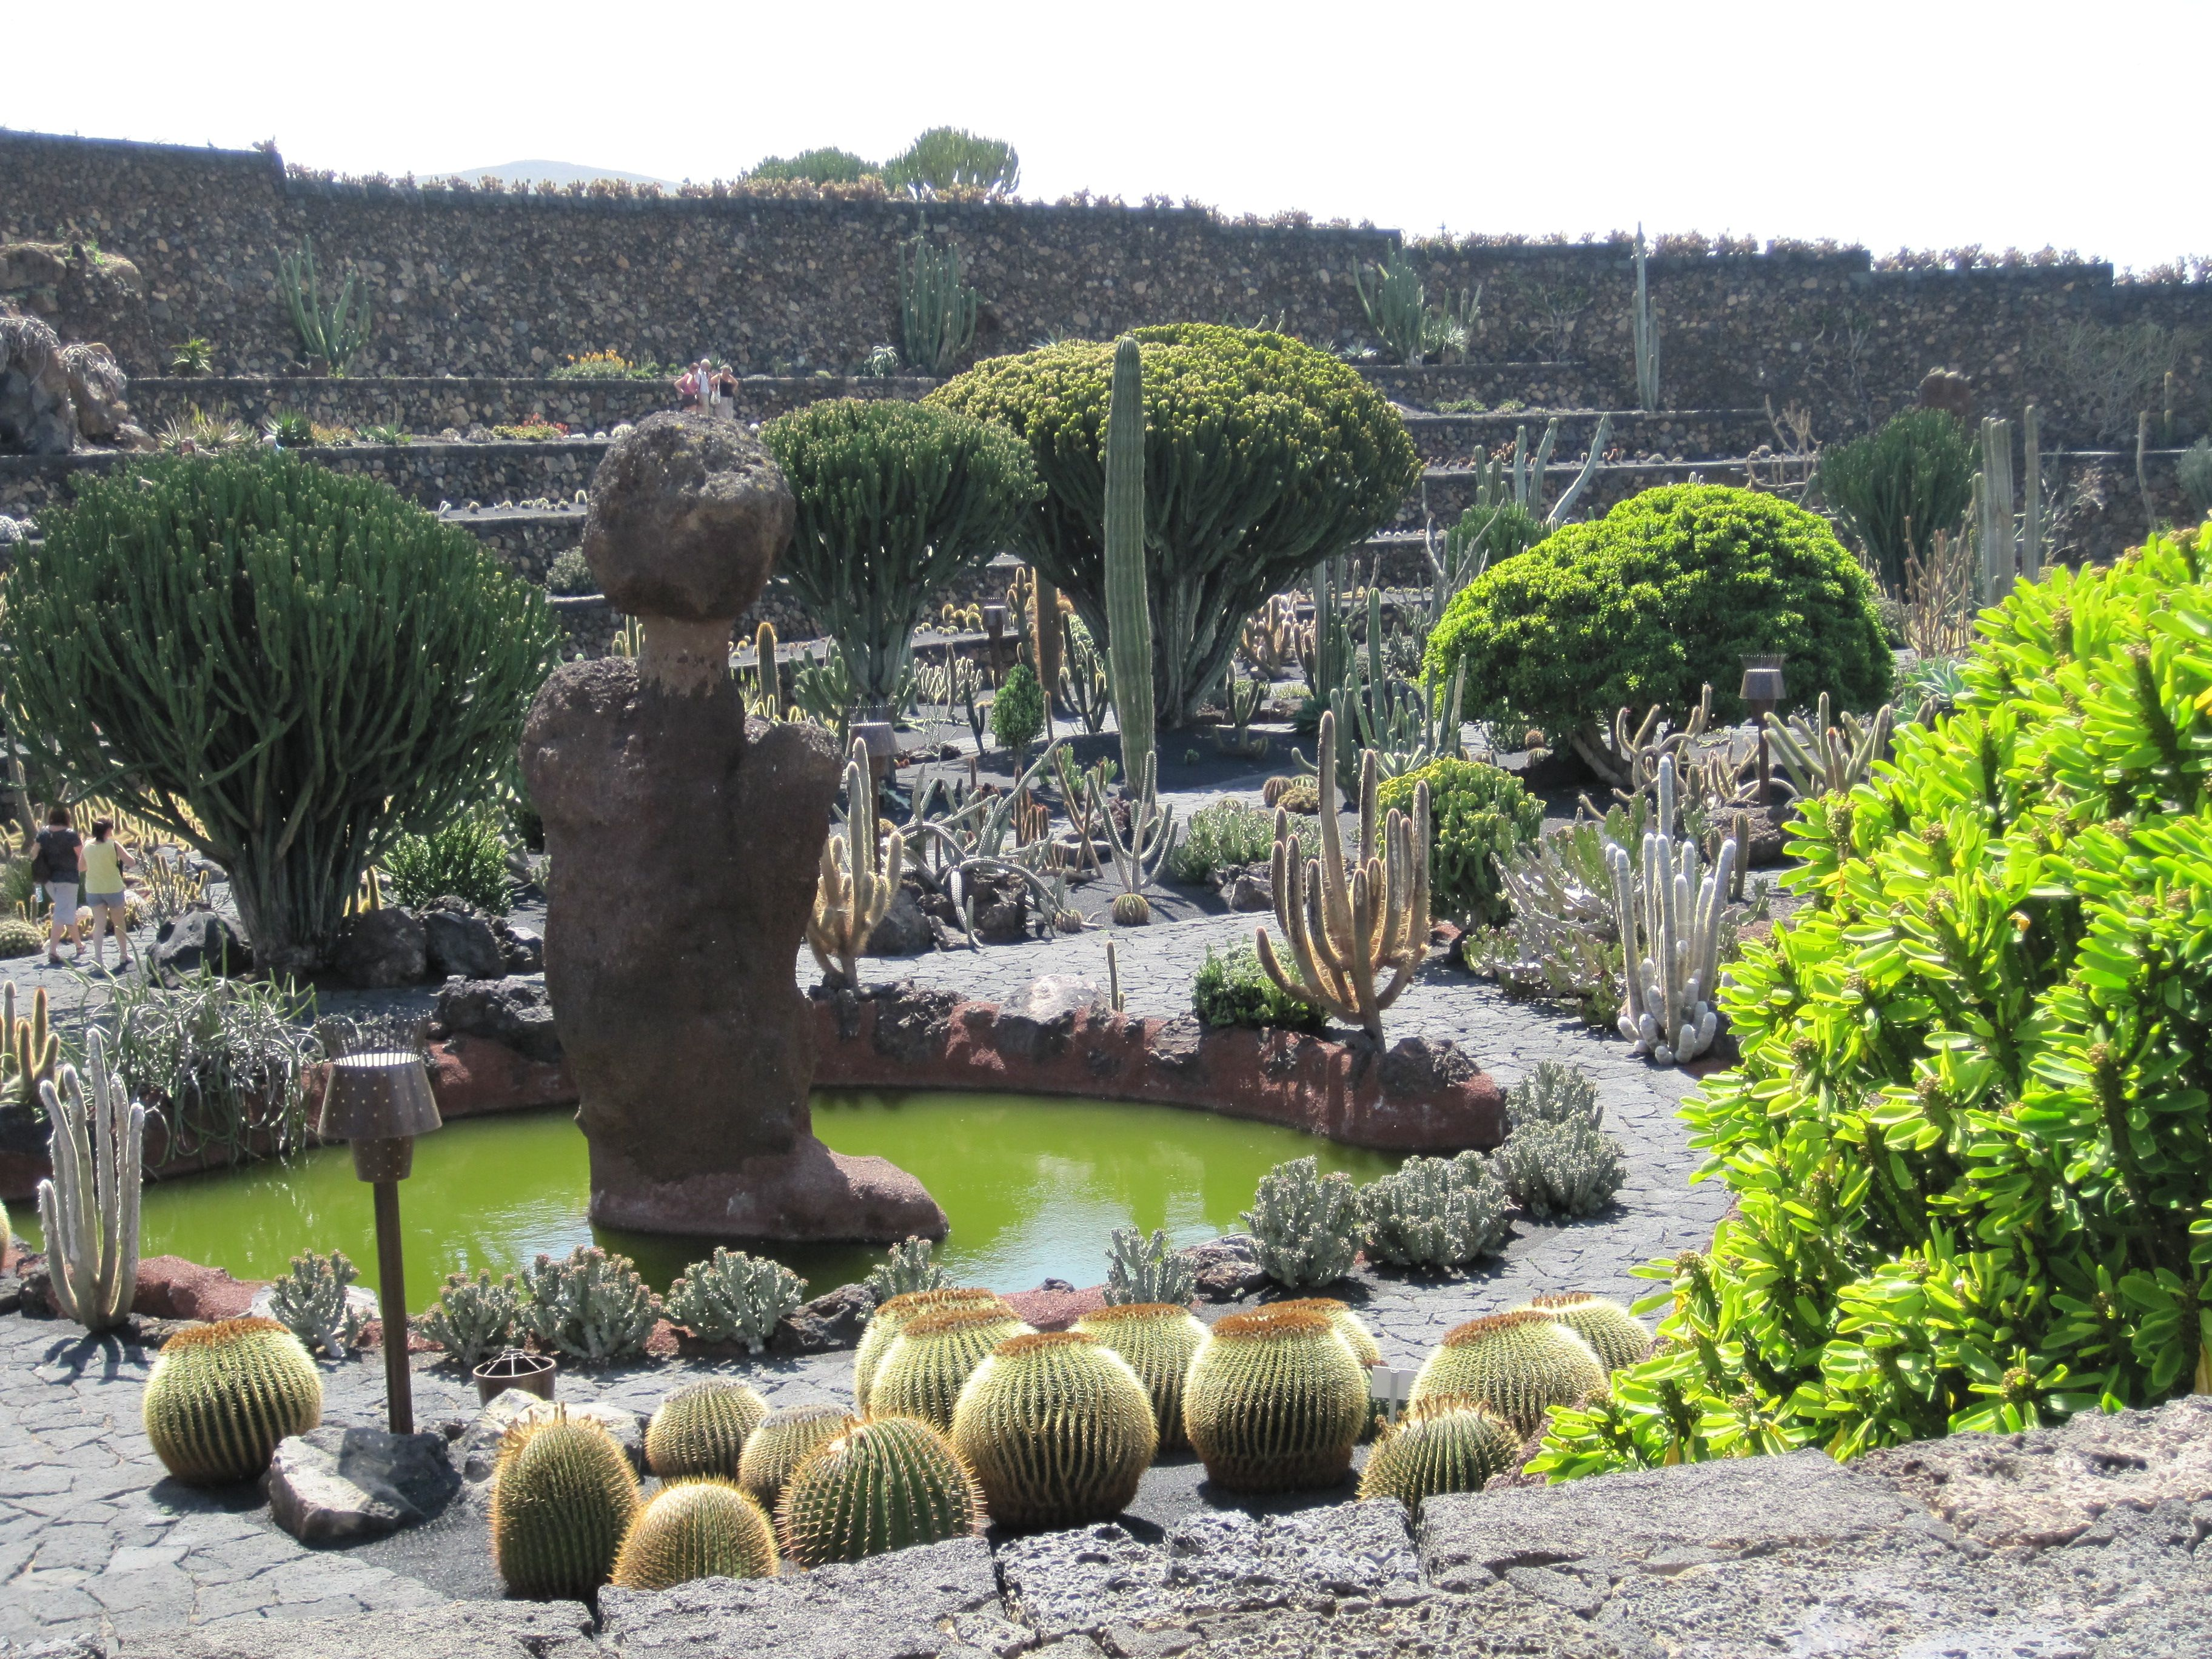 jard n de cactus lanzarote espa a jardiner a pinterest canary islands. Black Bedroom Furniture Sets. Home Design Ideas